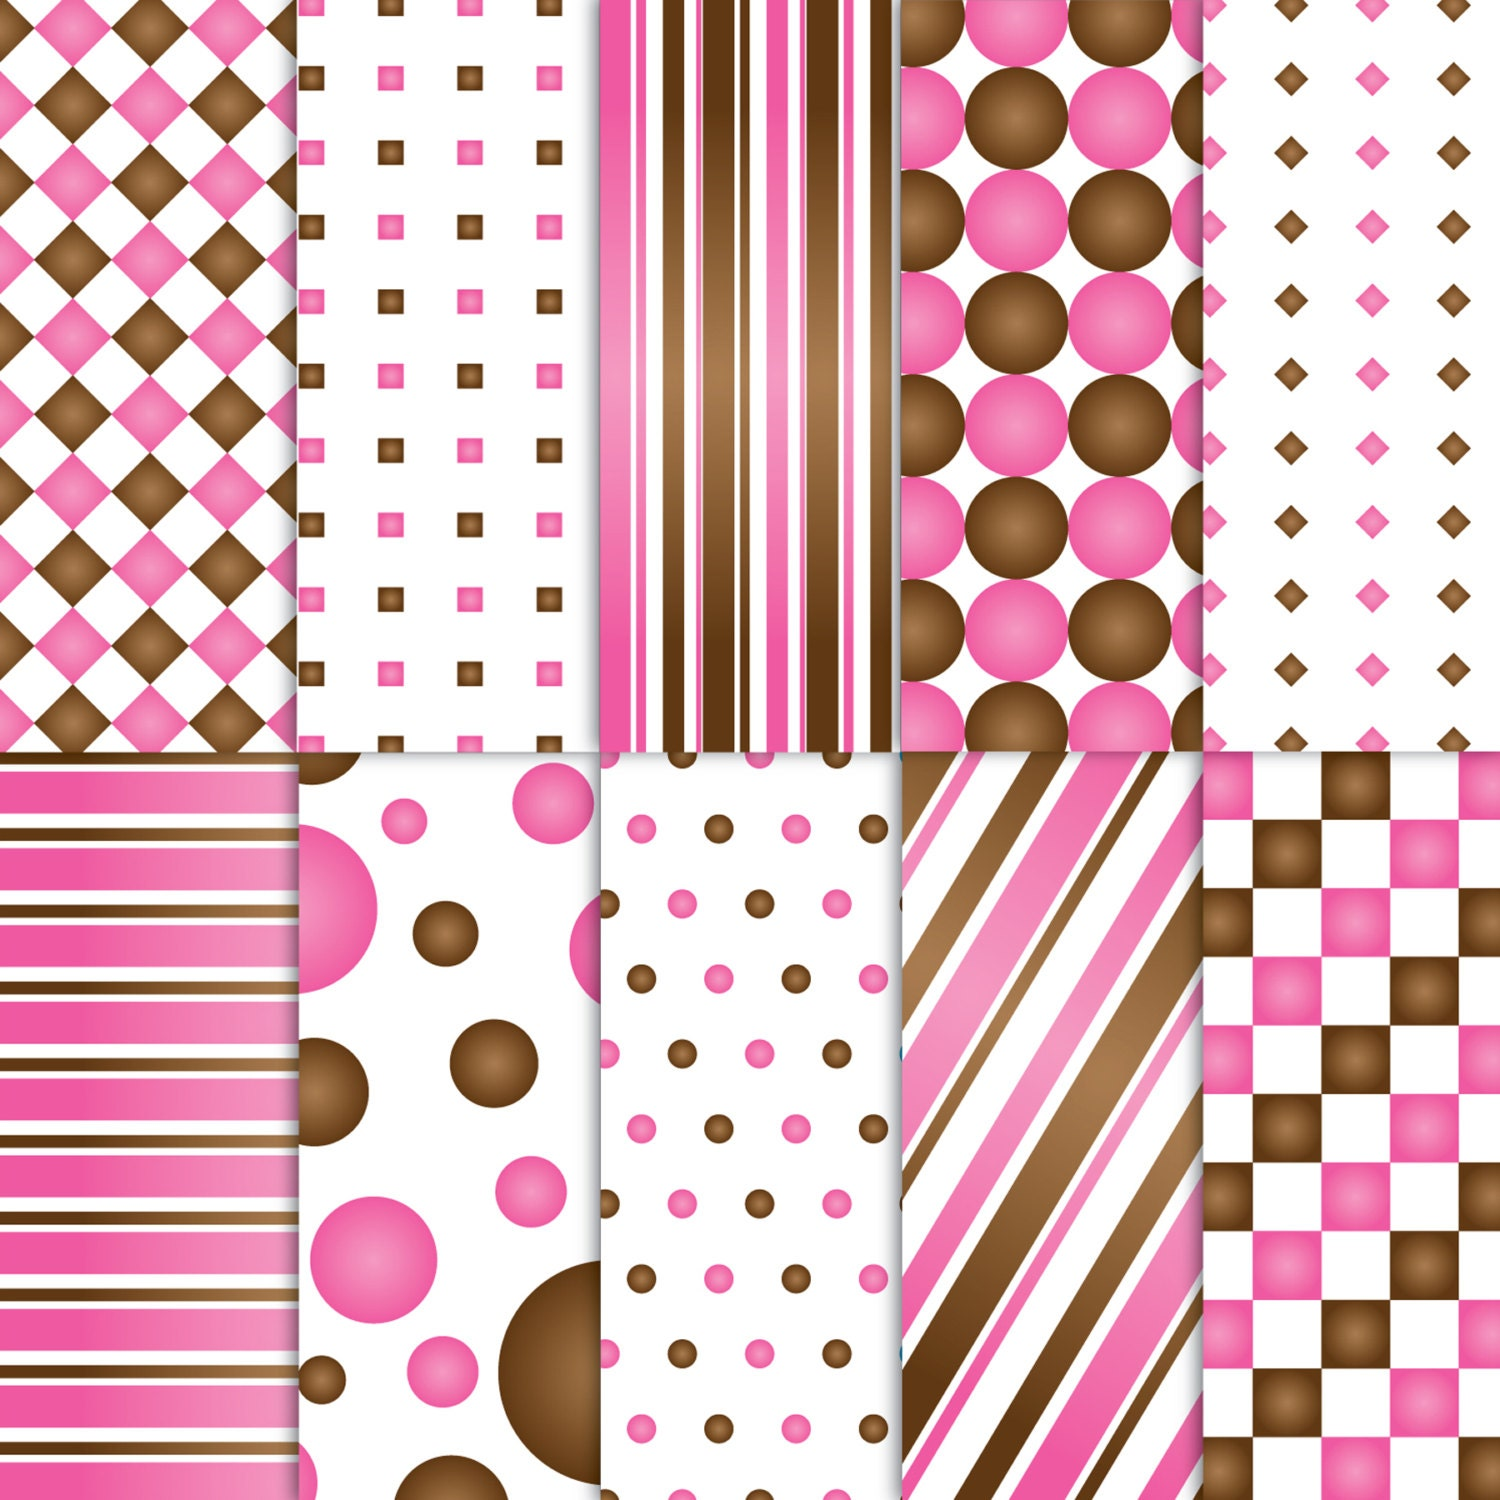 Scrapbook paper designs to print - Brown And Pink Scrapbook Paper Printable Brown And Pink Paper Printable Brown And Pink Scrapbook Paper Brown And Pink Paper Baby Girl